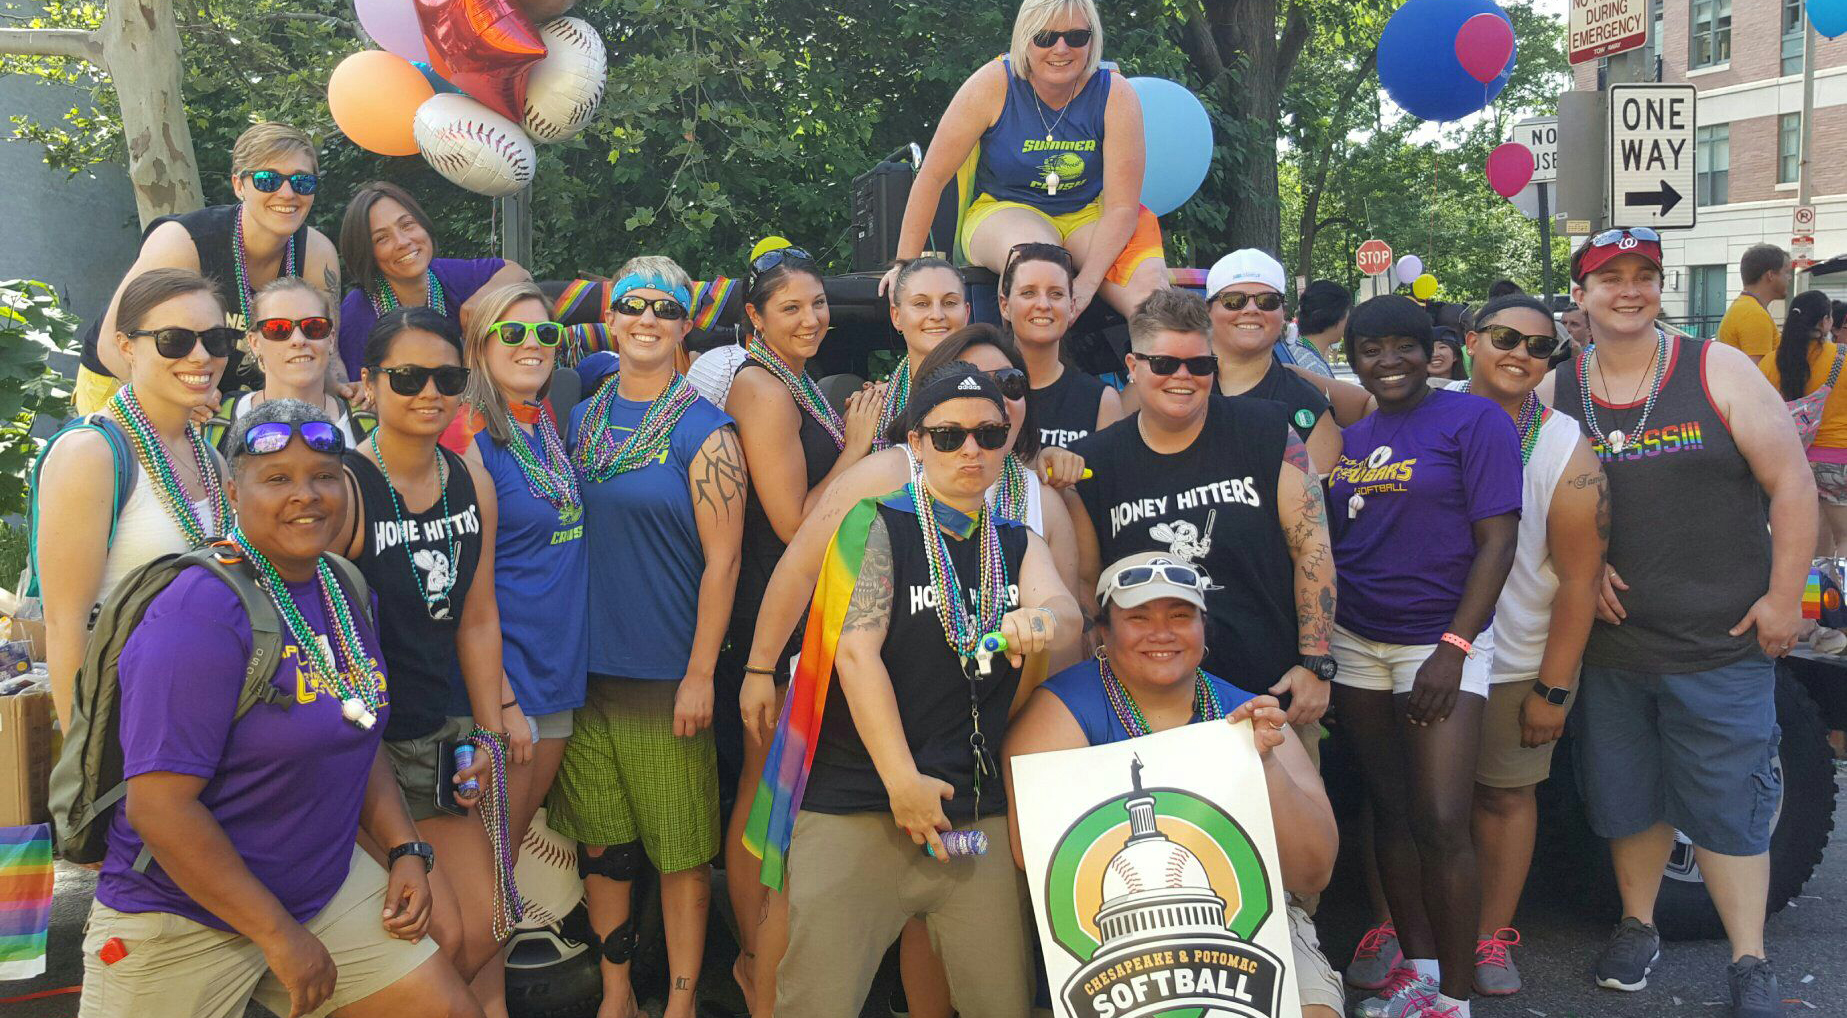 Women's Division at Pride 2016